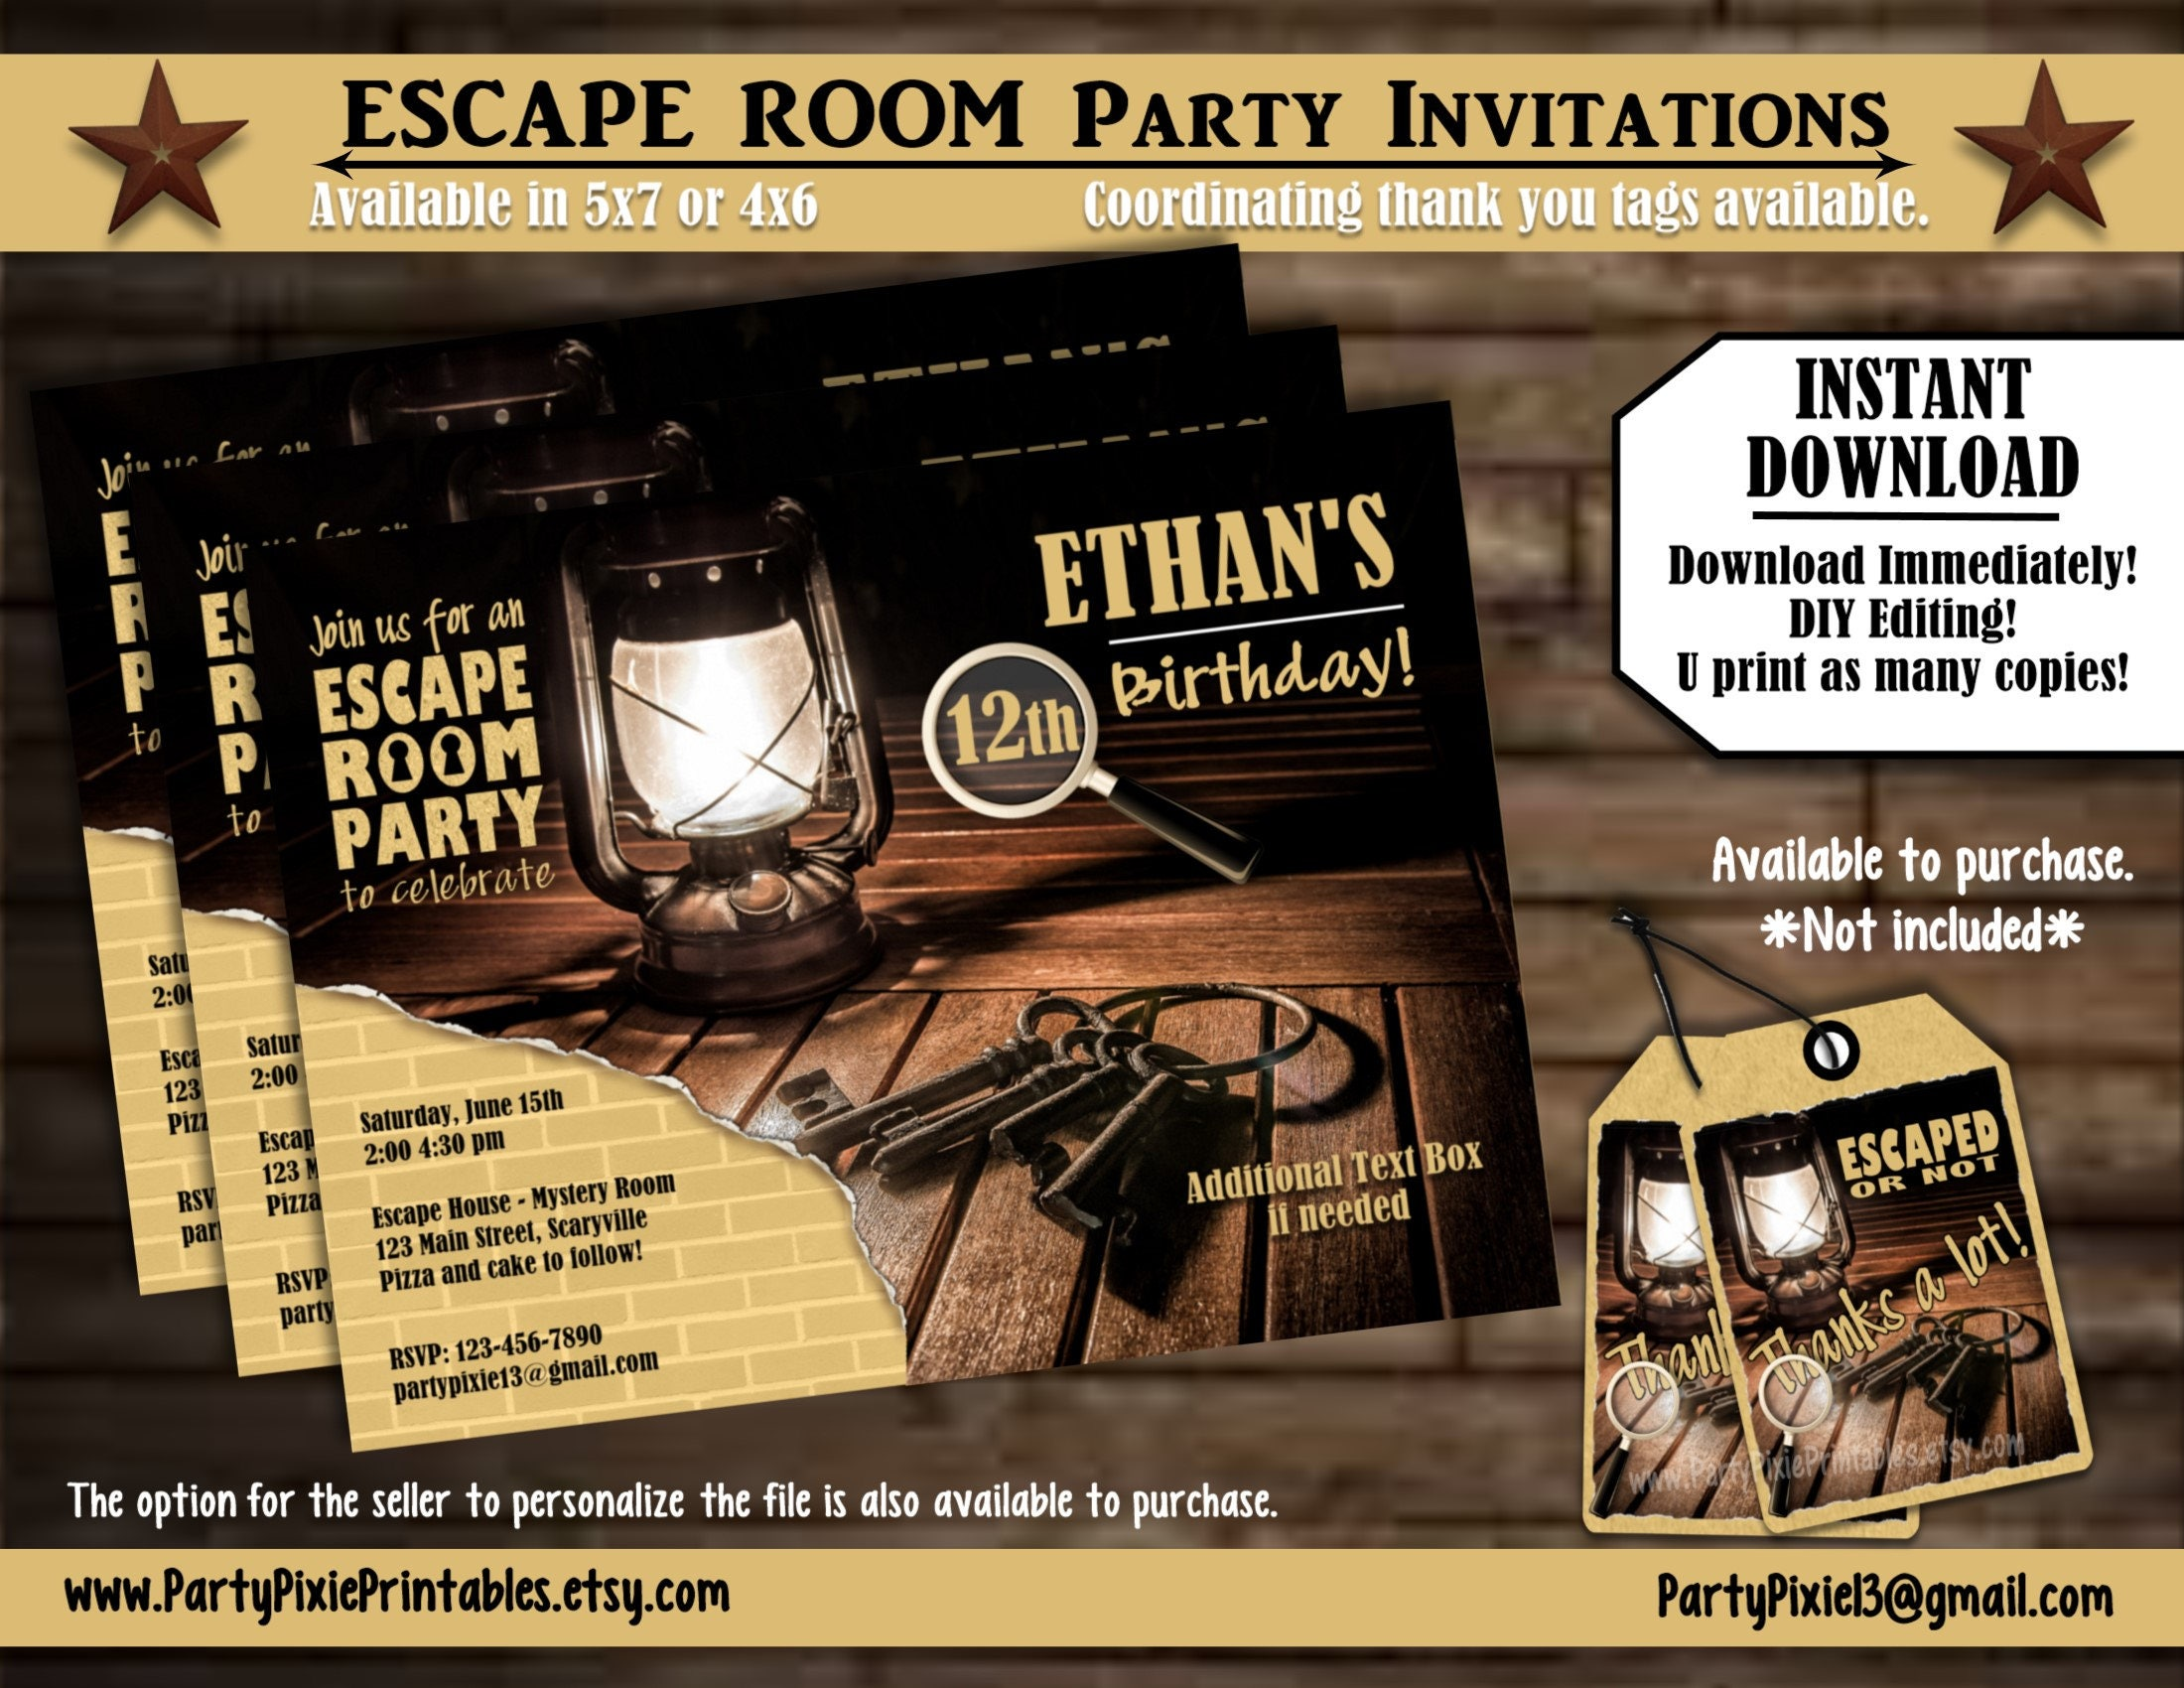 Instant download escape room party invitations 5x7 4x6 for Escape room party